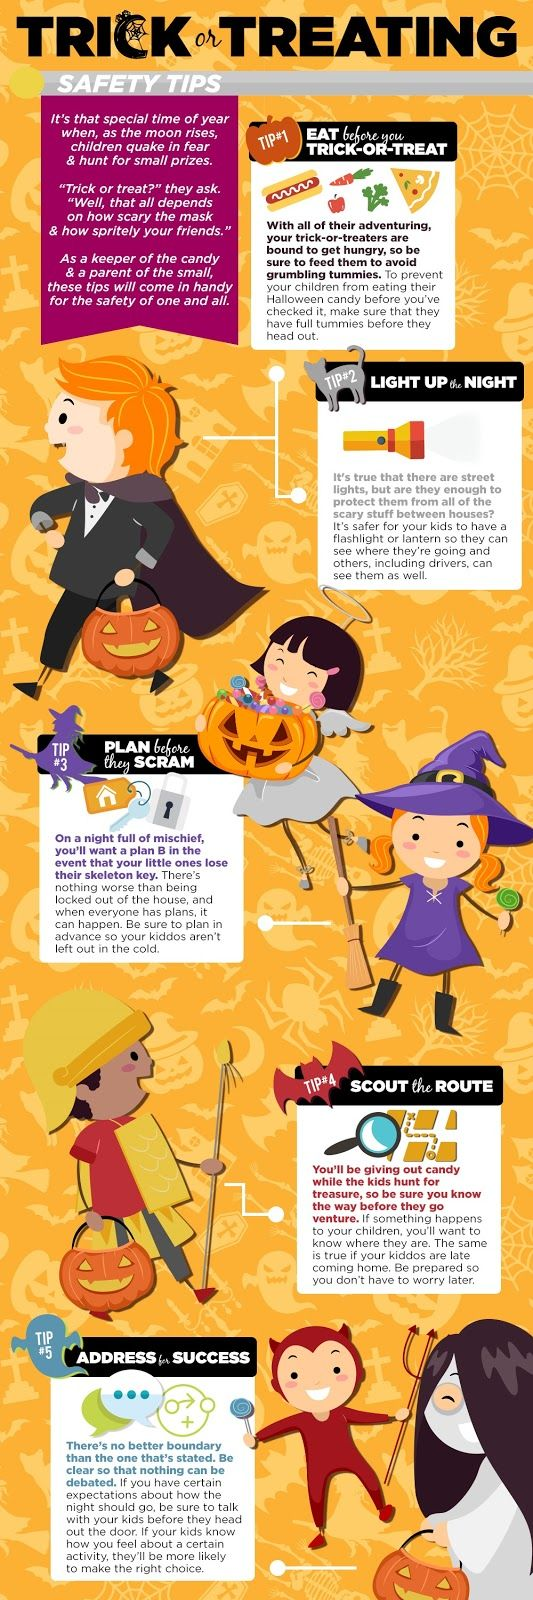 just treats no tricks halloween safety tipshalloween - Halloween Tips For Parents